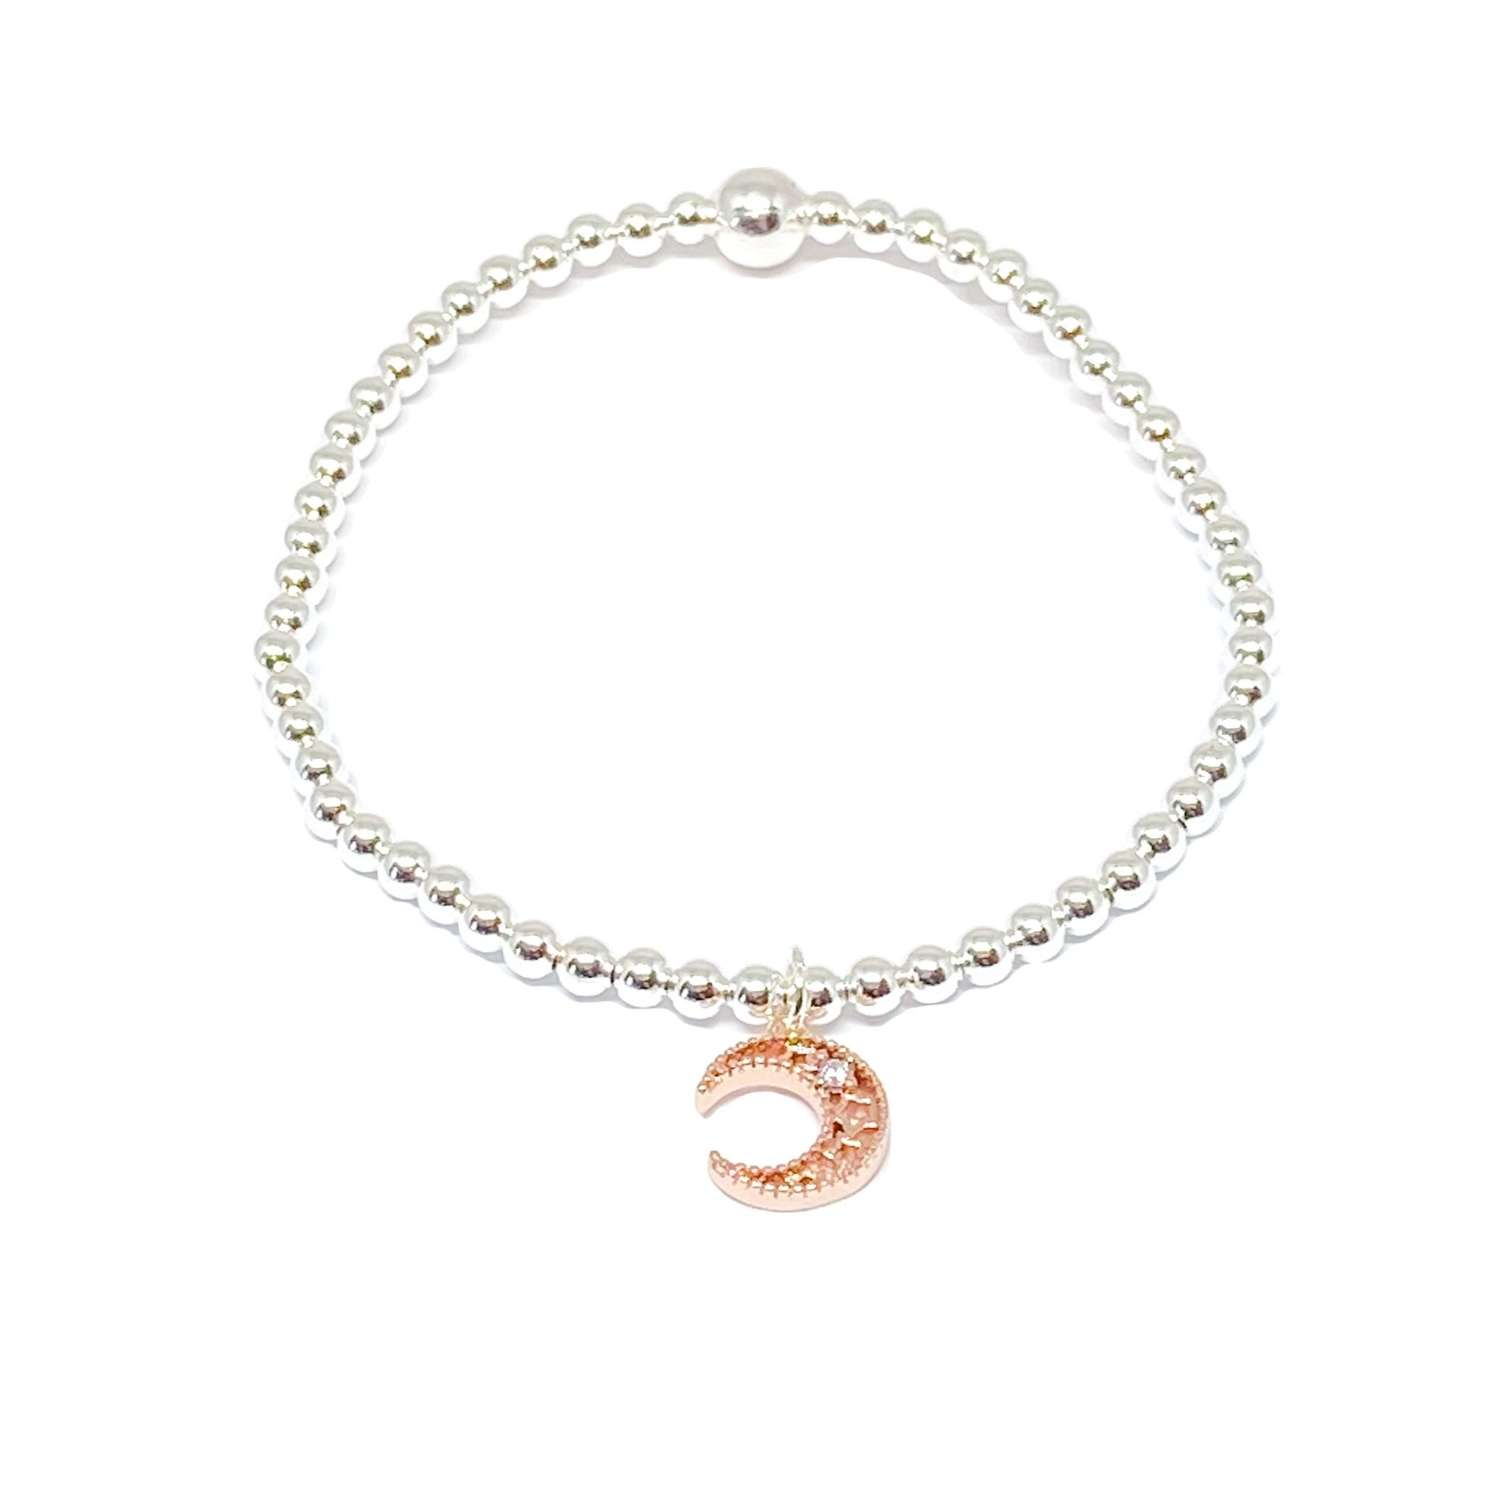 Luna Moon Bracelet - Rose Gold